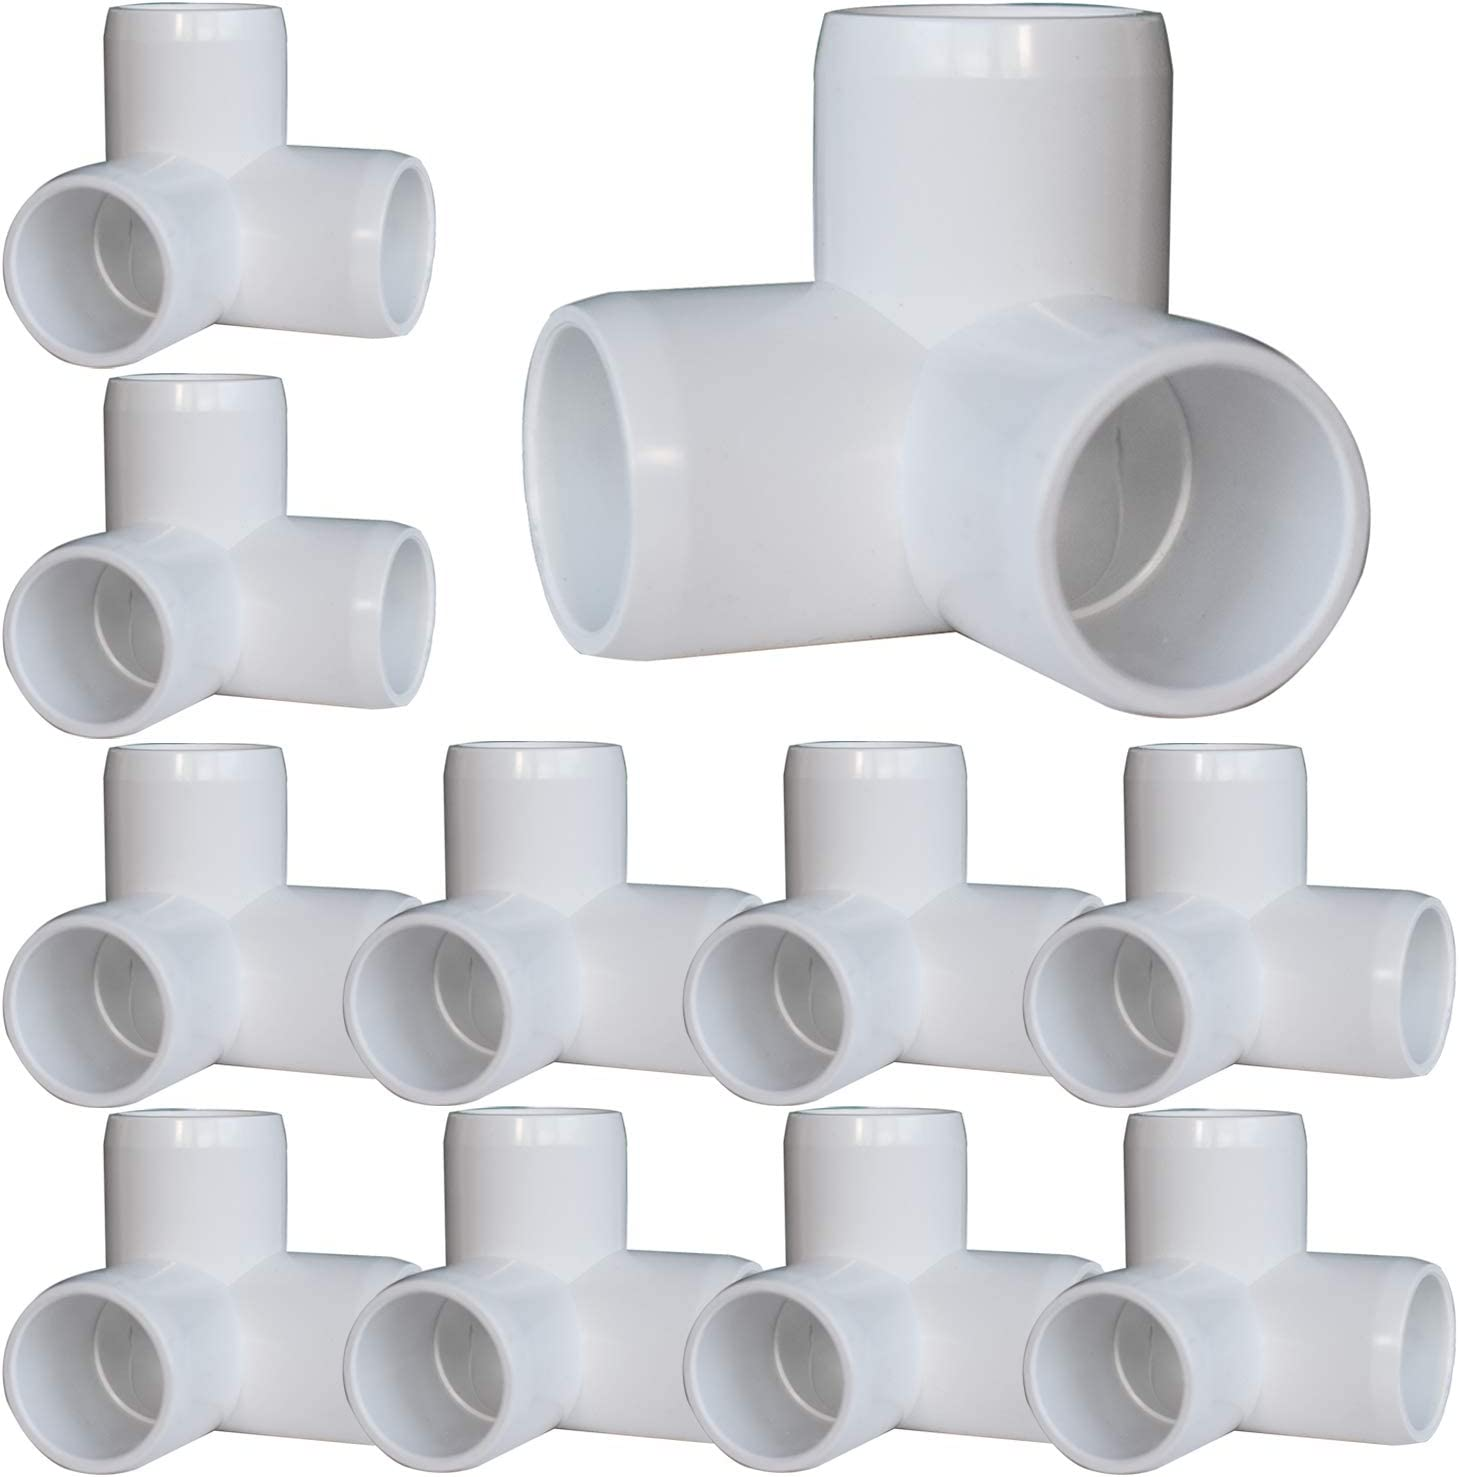 20Pack 3-Way Elbow PVC Fittings, 1/2Inch PVC Furniture Fittings, 90 Degree PVC Elbow Side Outlet Tee, PVC Corner Fittings for Building PVC Furniture Greenhouse Shed Pipe Fittings Tent Connection